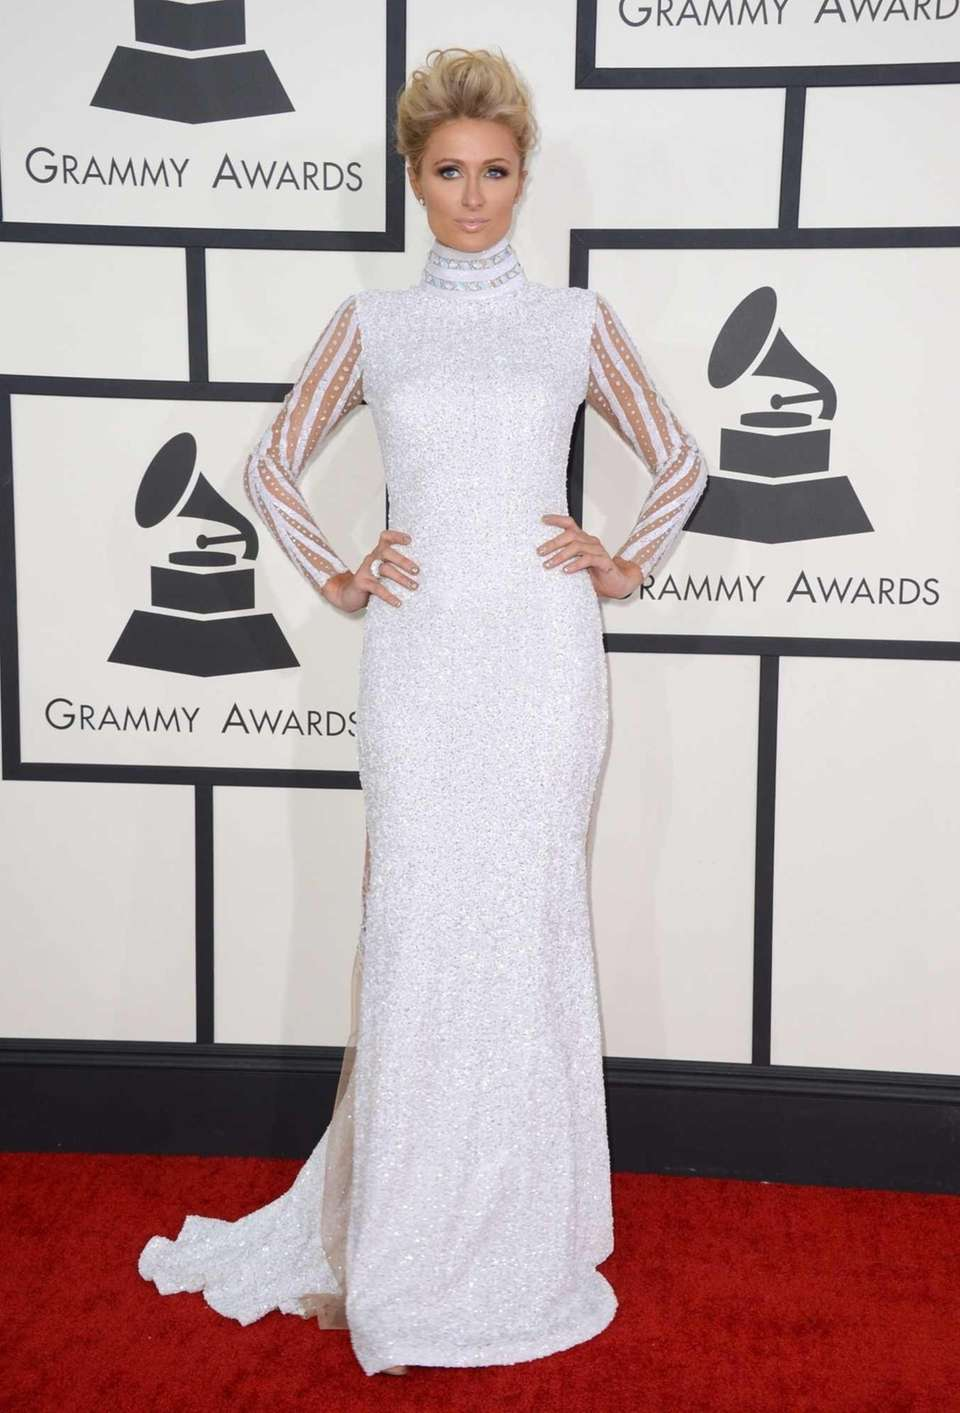 Paris Hilton arrives at the 56th annual Grammy